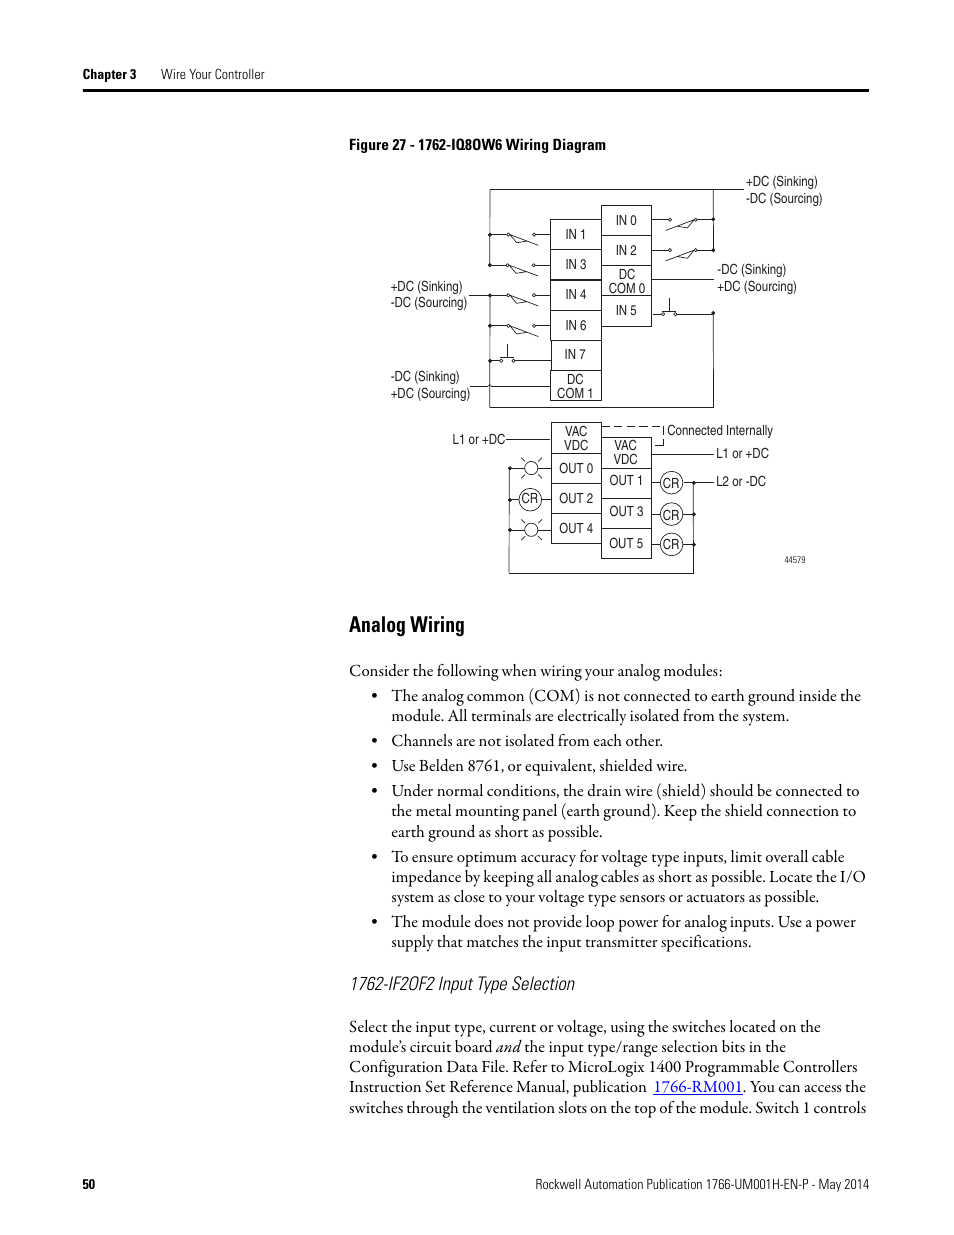 hight resolution of analog wiring 1762 if2of2 input type selection rockwell automation 1766 lxxxx micrologix 1400 programmable controllers user manual user manual page 64